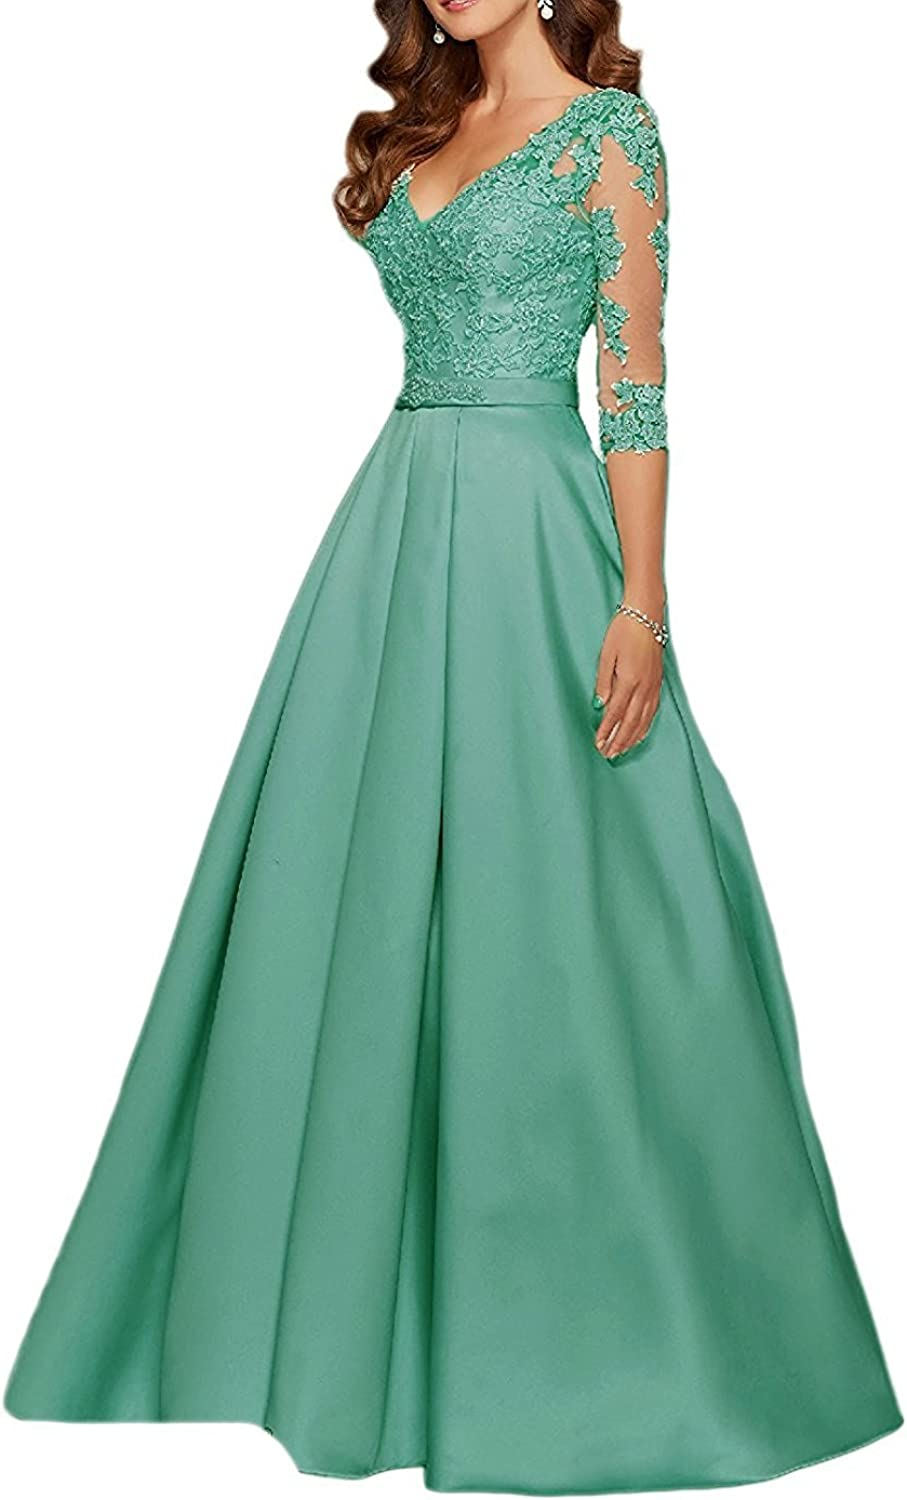 Alexzendra Women's VNeck 3 4 Sleeves Prom Dress Lace Long Mother Of The Bride Dresses 2017